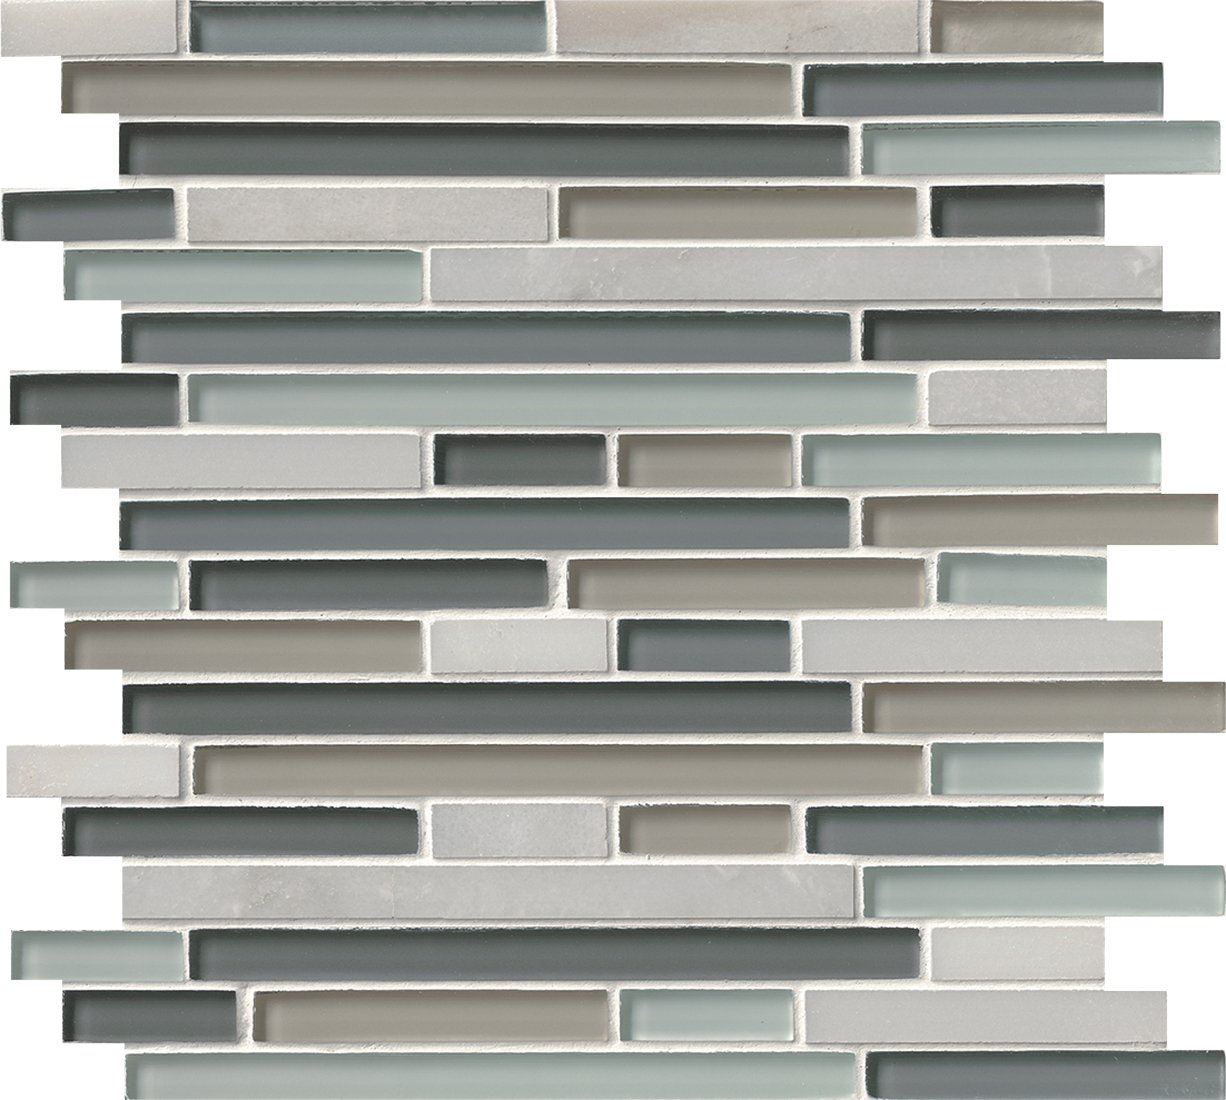 M S International Keystone Blend Interlocking 12 In. X 12 In. X 8mm Glass Stone Mesh-Mounted Mosaic Tile, (10 sq. ft., 10 pieces per case)